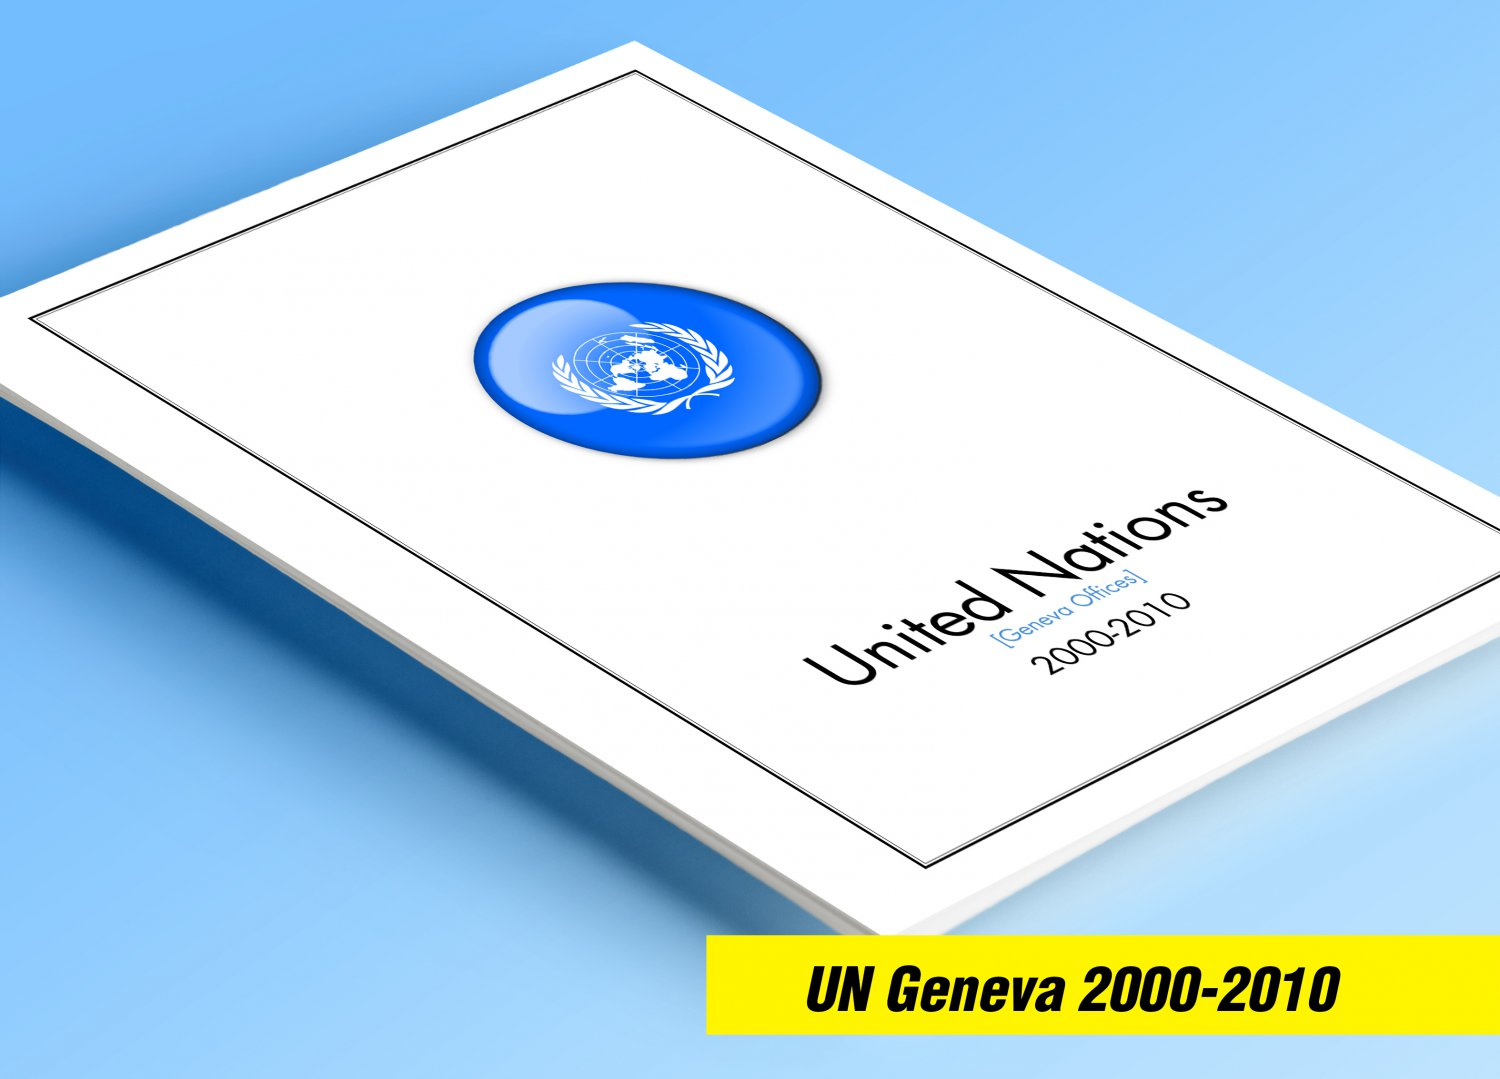 COLOR PRINTED UNITED NATIONS - GENEVA OFFICES 2000-2010 STAMP ALBUM  PAGES (52 illustrated pages)